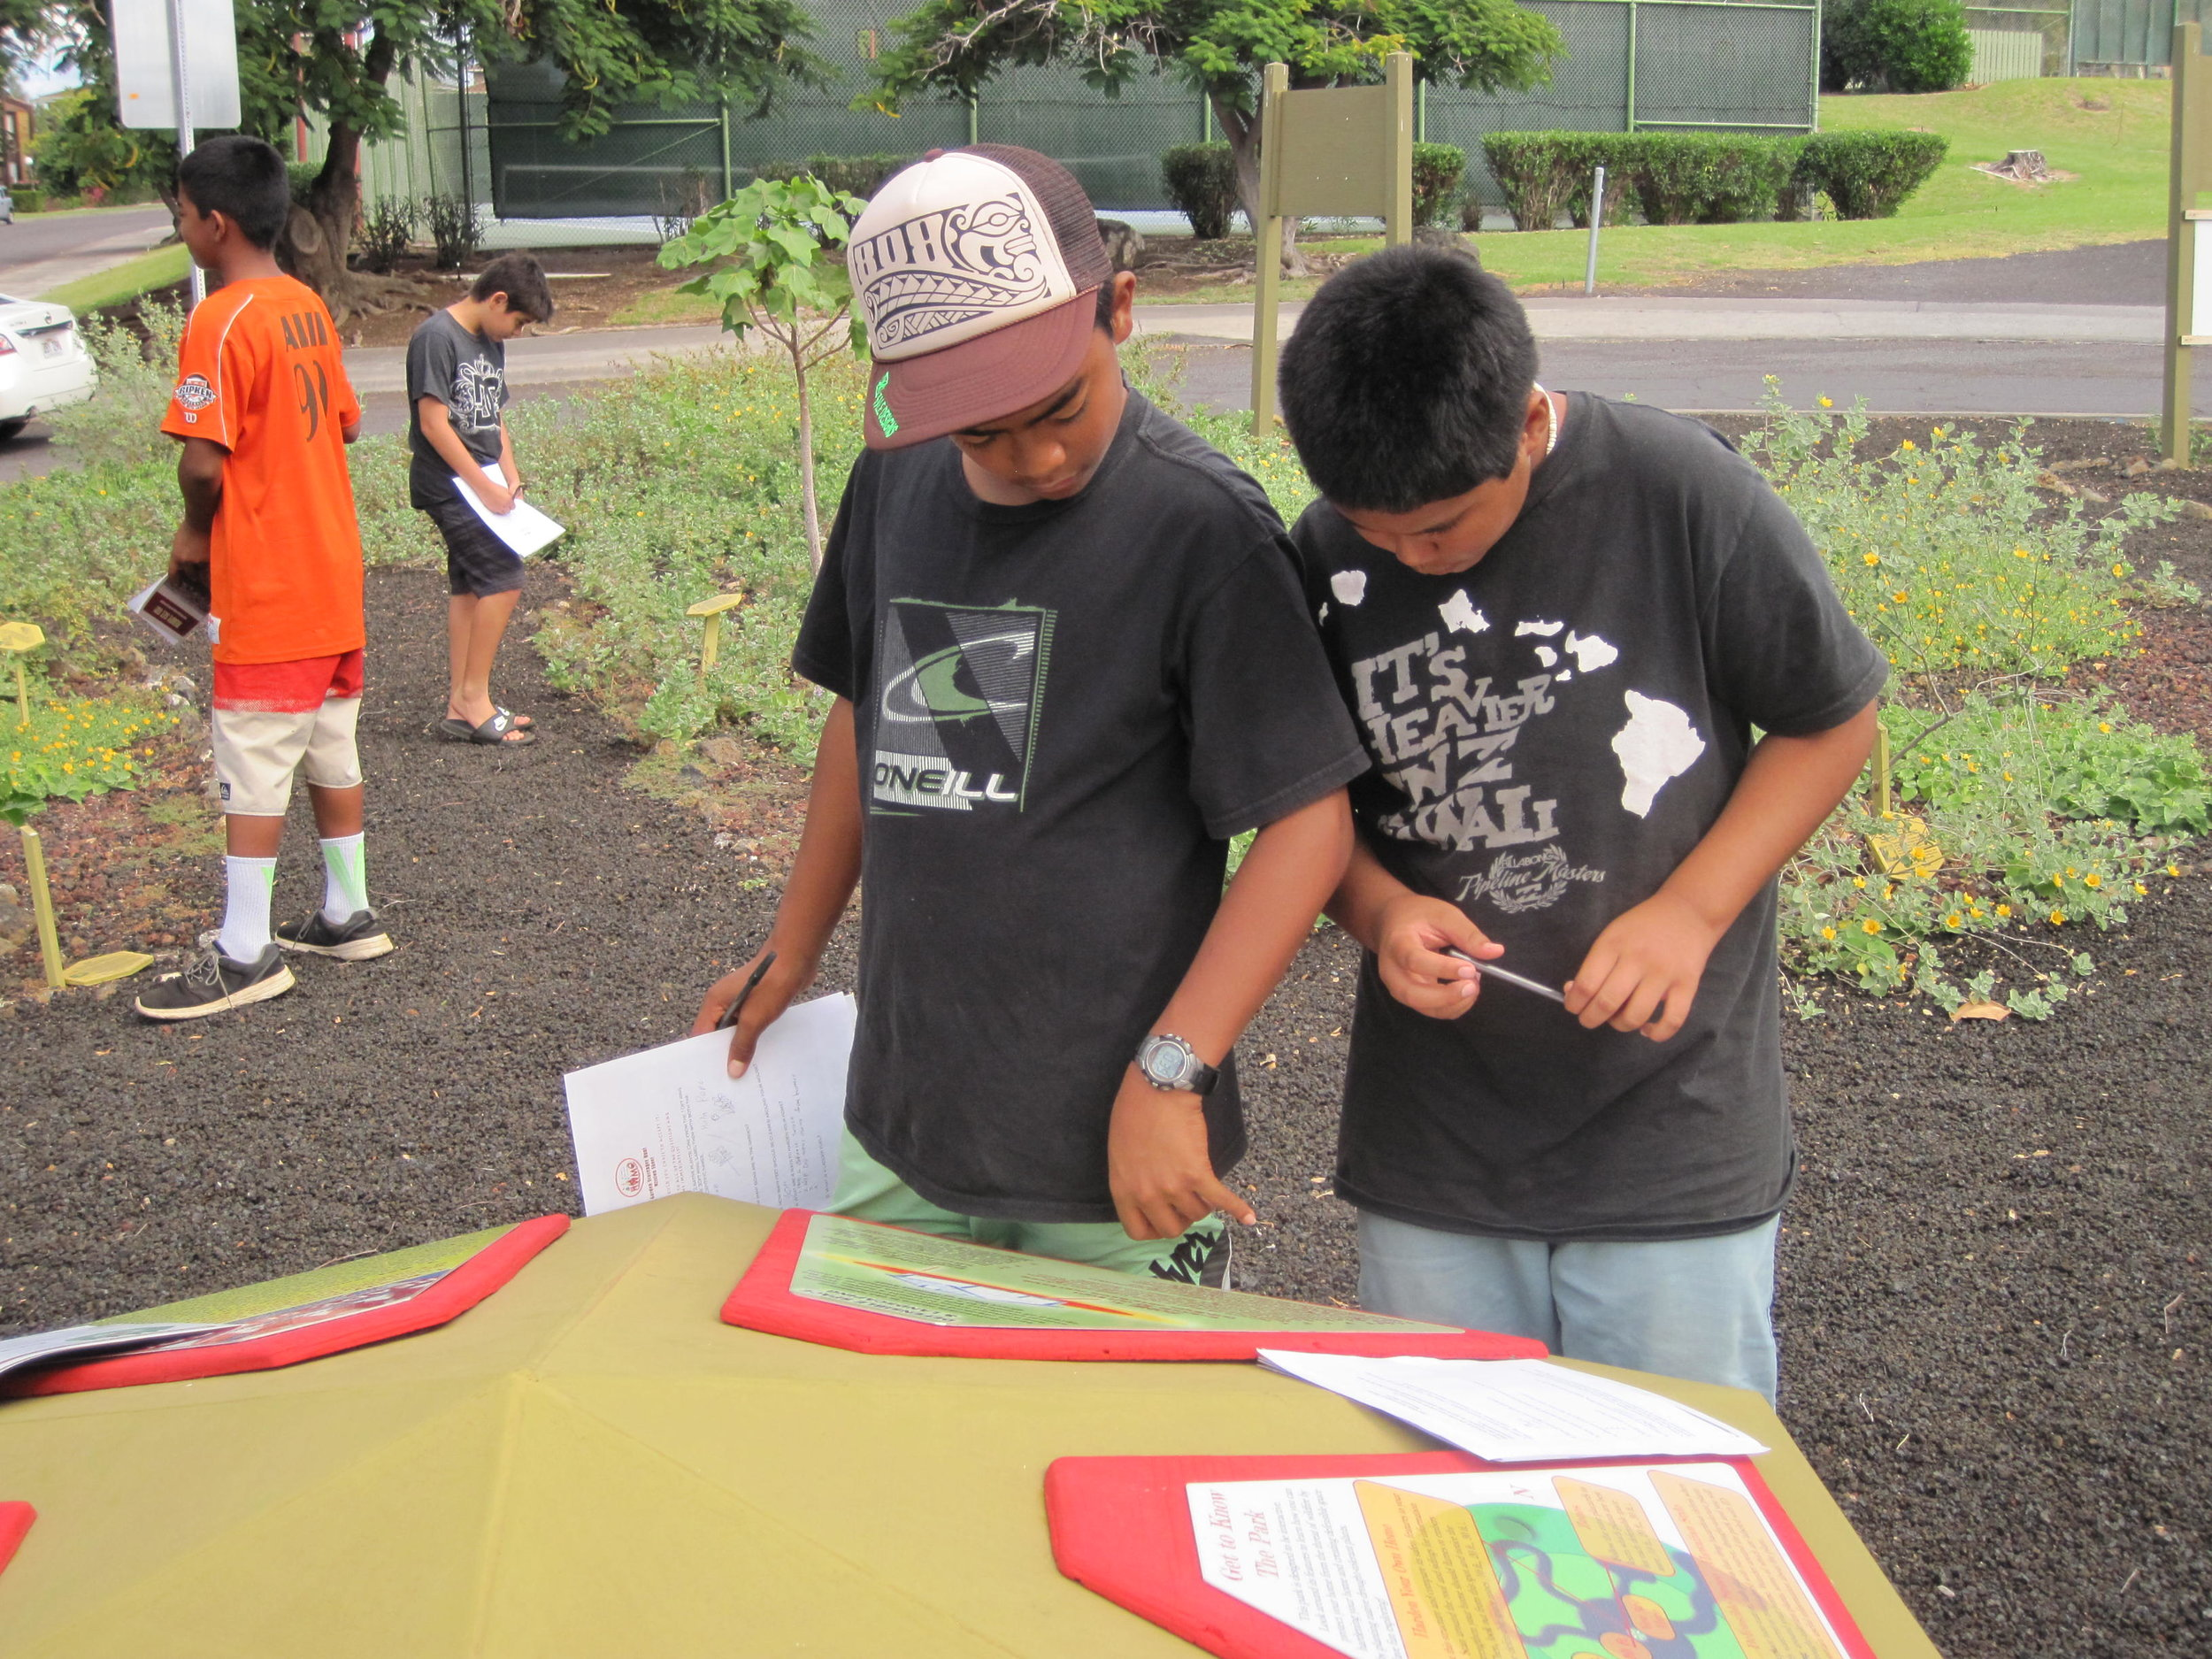 HWMO is in discussions with the Waiʻanae Library about creating a Firewise garden much like the one in Waikoloa Village.